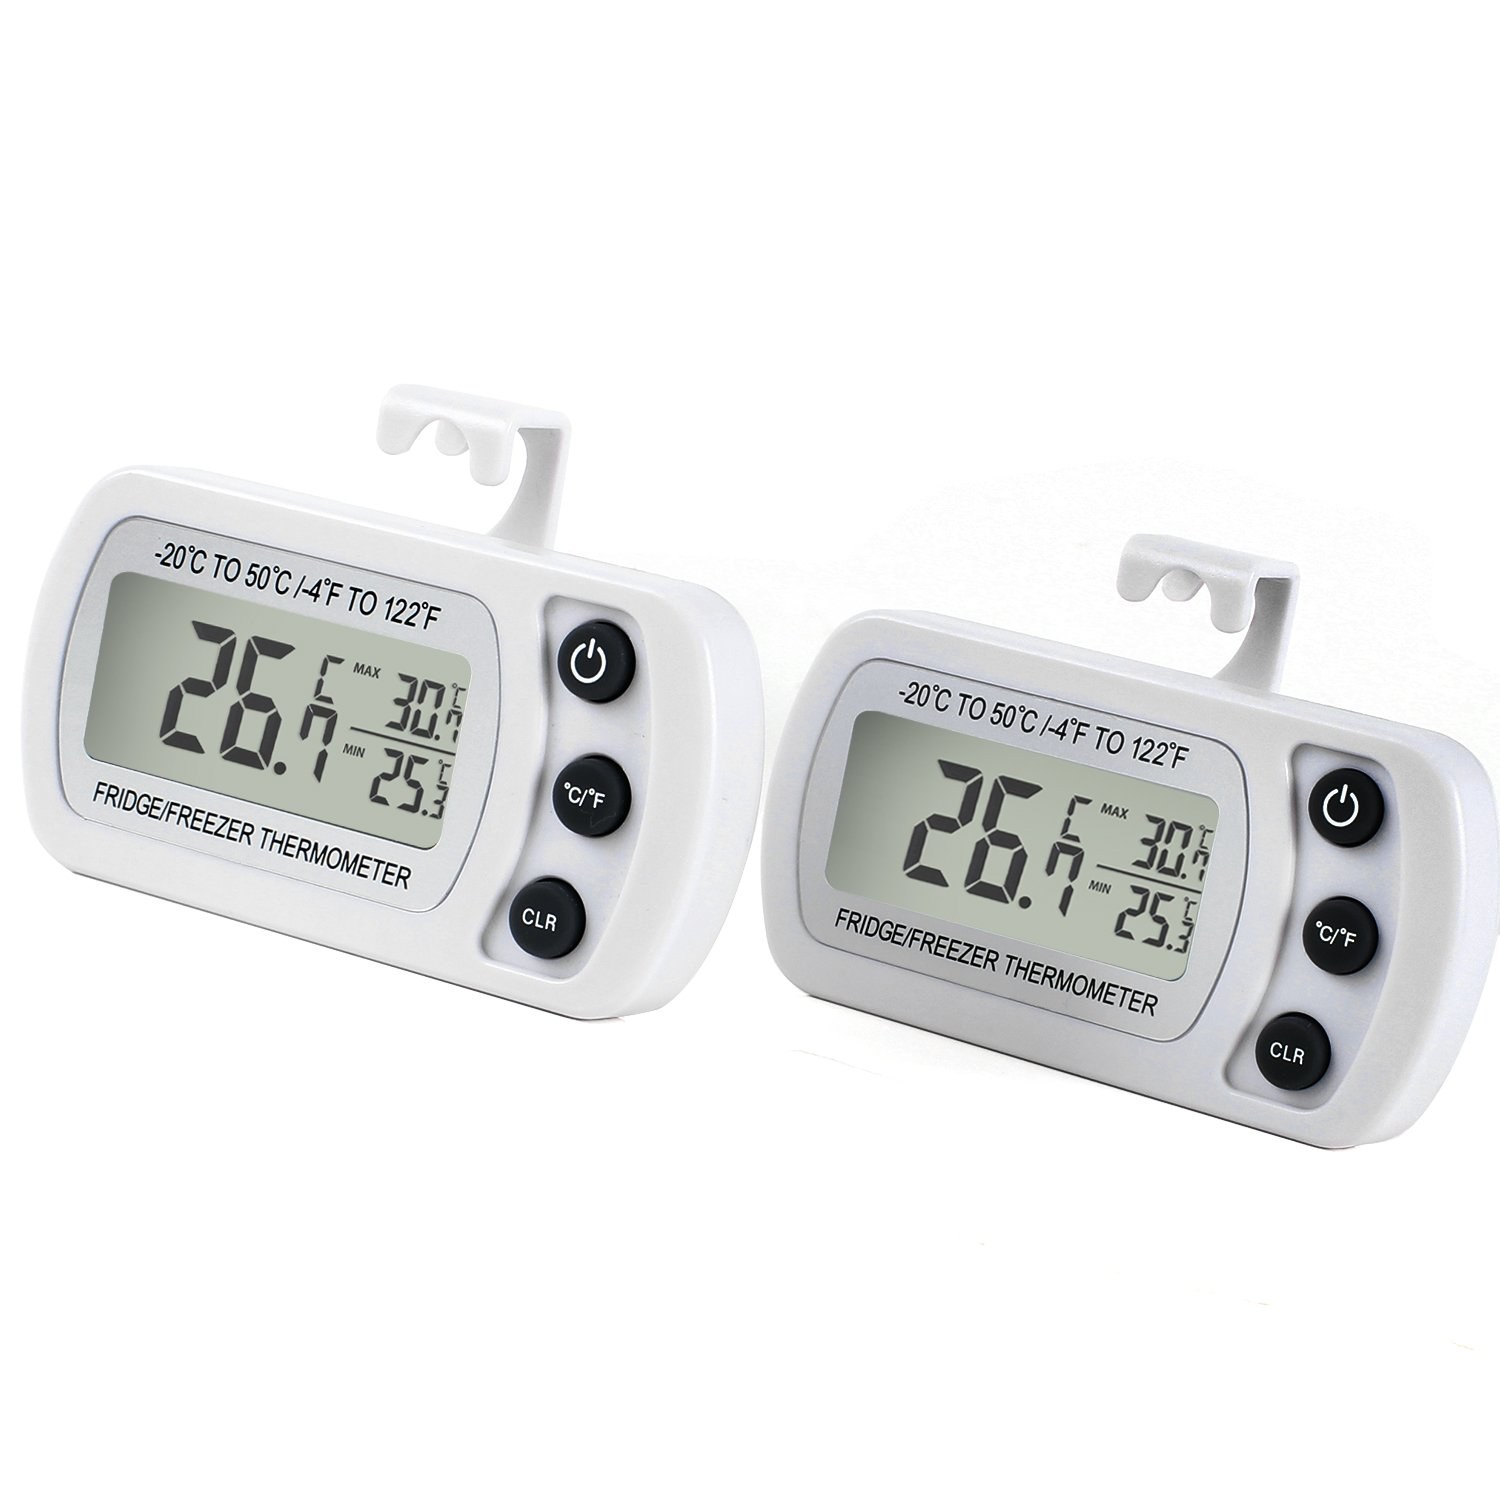 Refrigerator Fridge Thermometer Digital Freezer Room Thermometer Waterproof, Max/Min Record Function with Large LCD Display (2 Pack of White) by Unigear